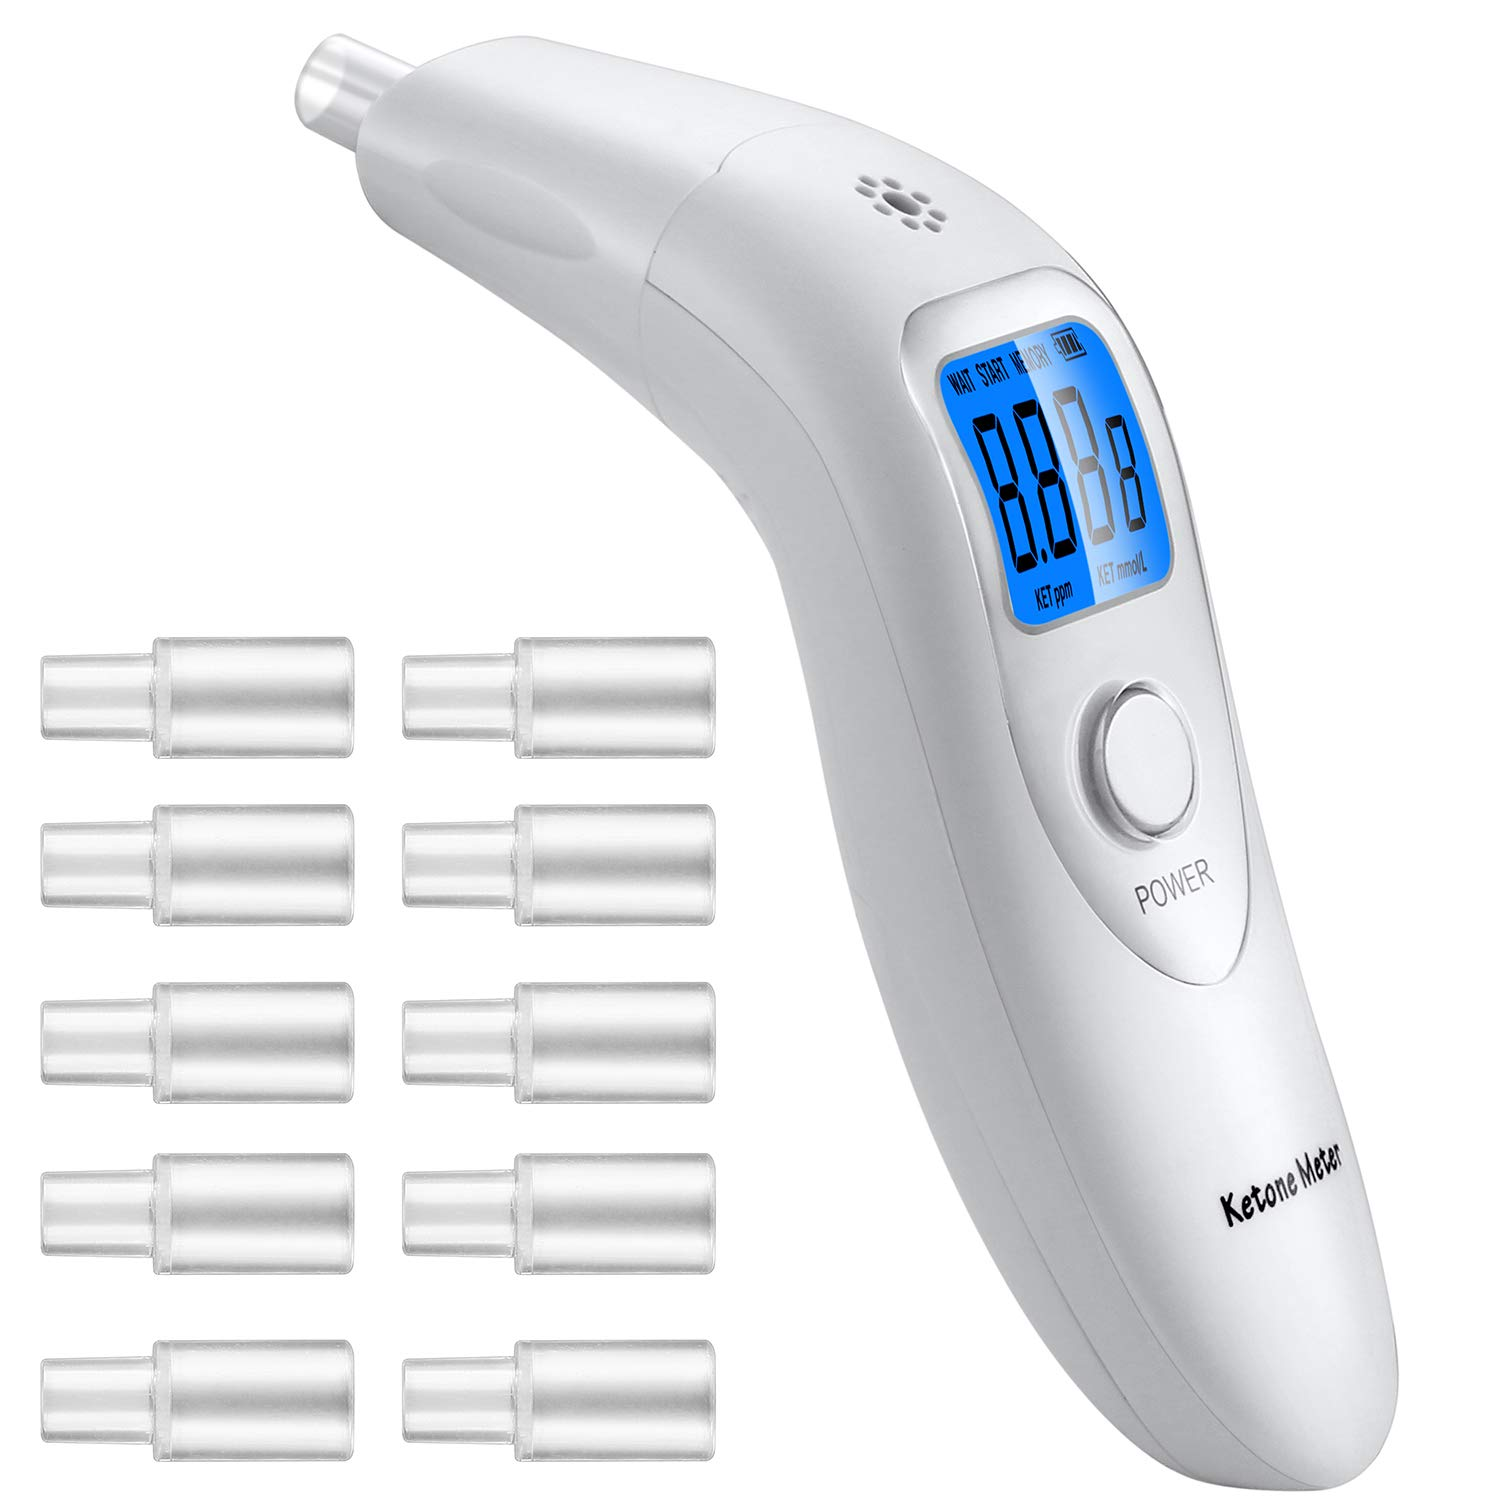 Anntoo Ketone Analyzer for Self-Ketosis Checking with 10pcs Replaceable Mouthpieces by Anntoo